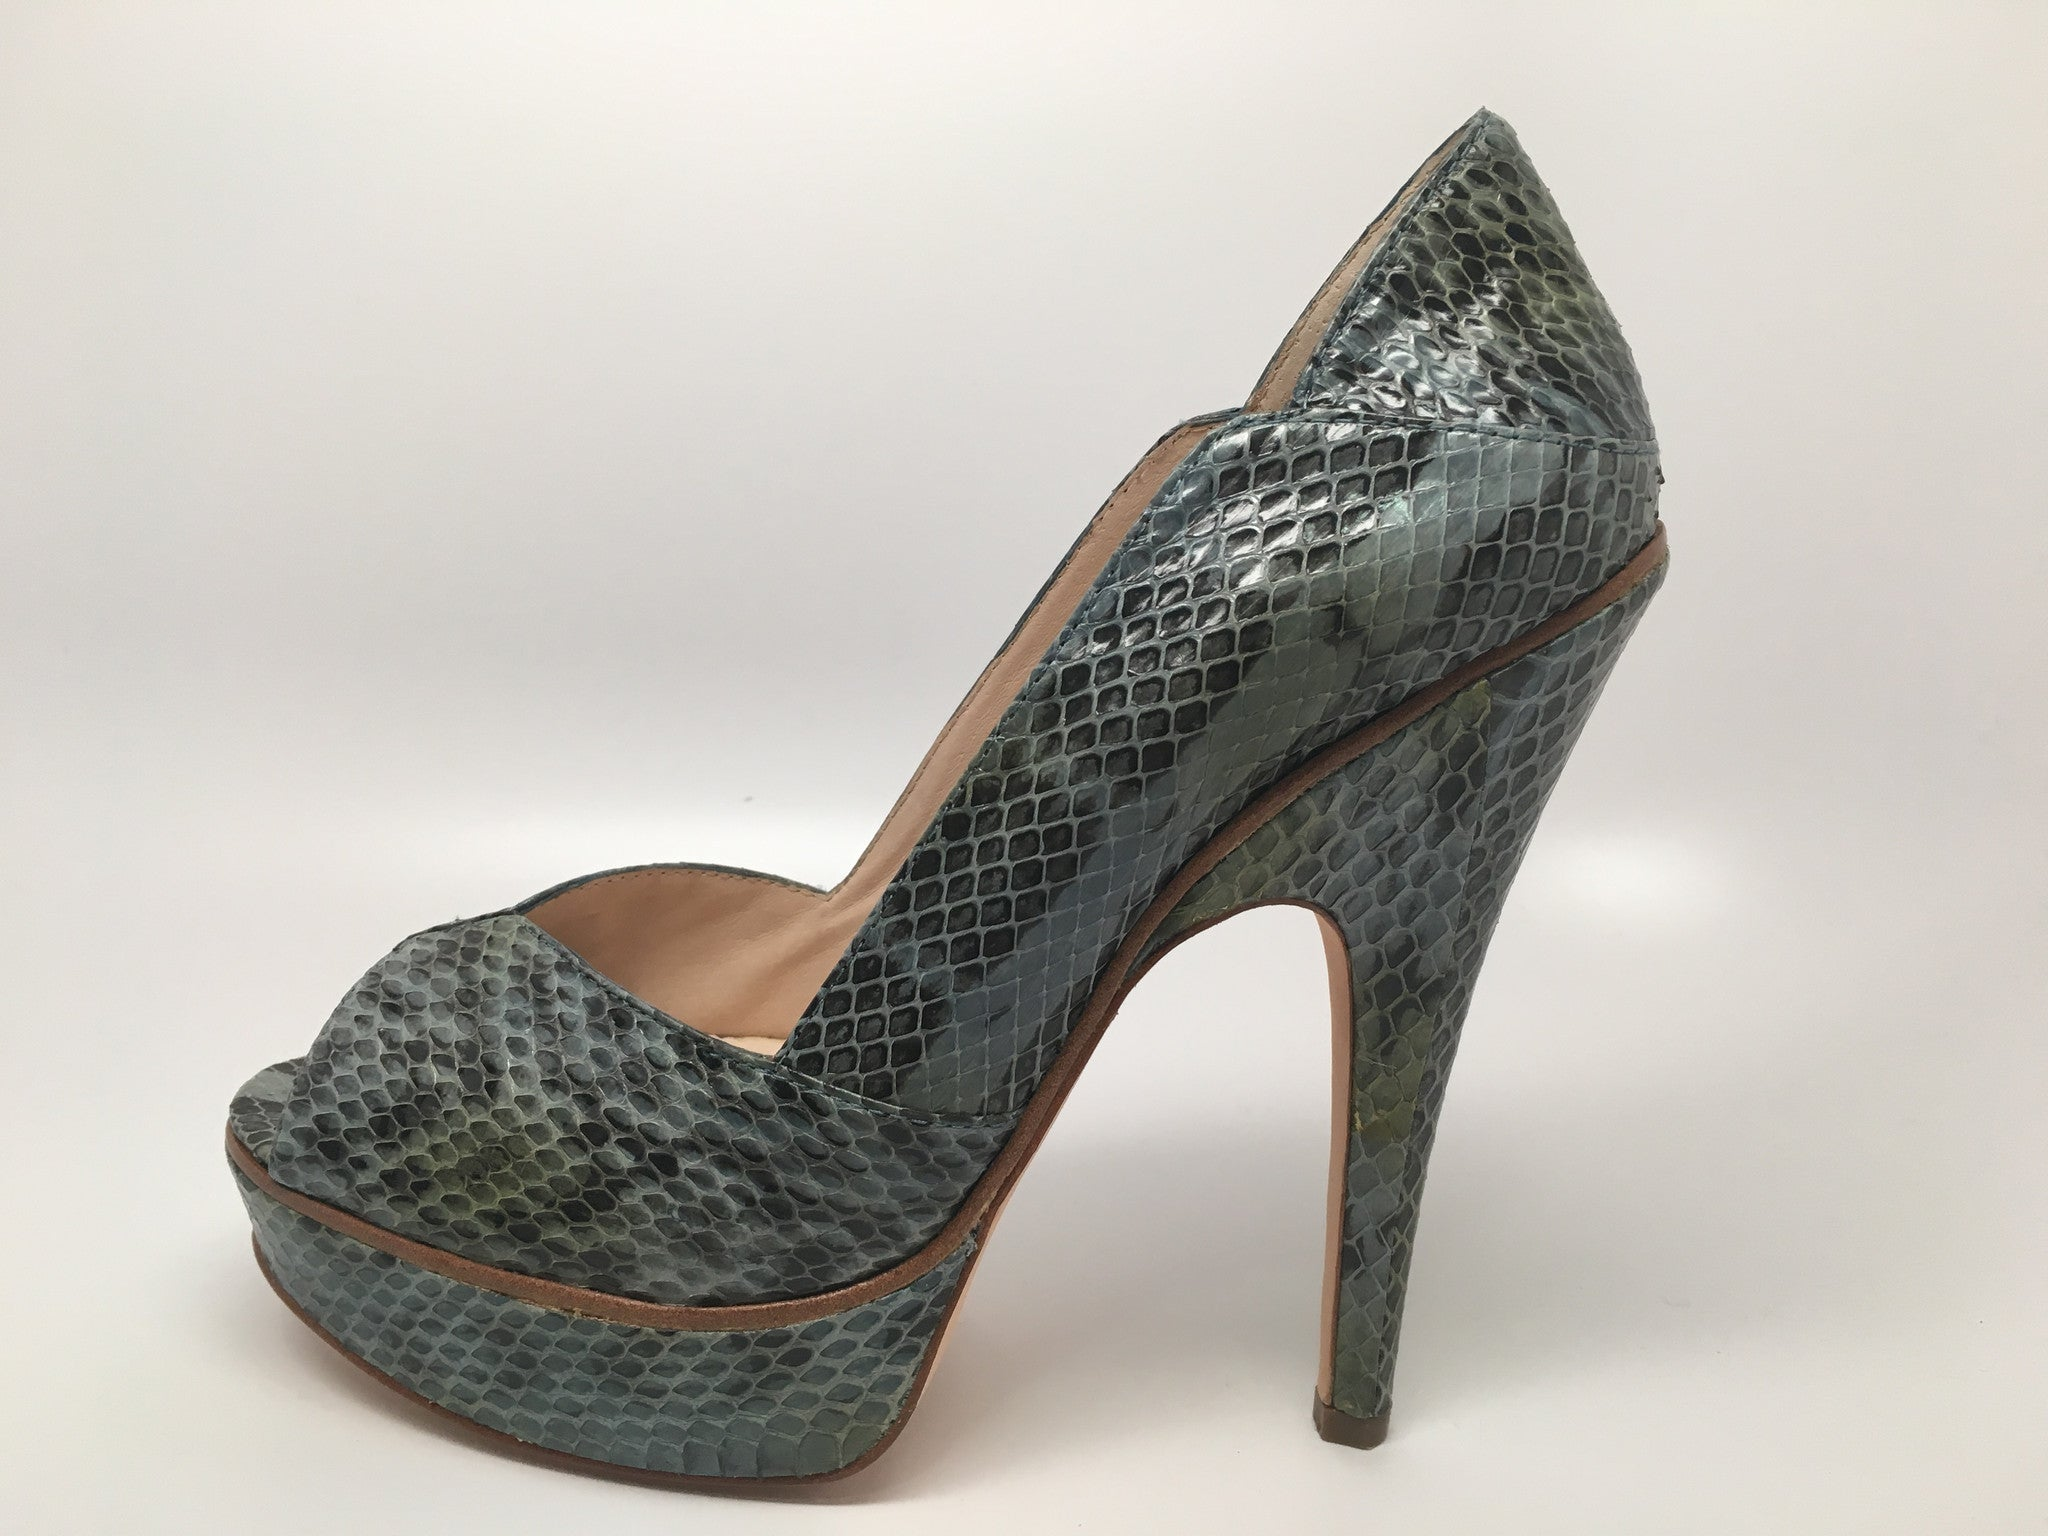 NEW HOUSE OF HARLOW LEIGH HEEL BLUE SNAKE - SIZE 9.5 US